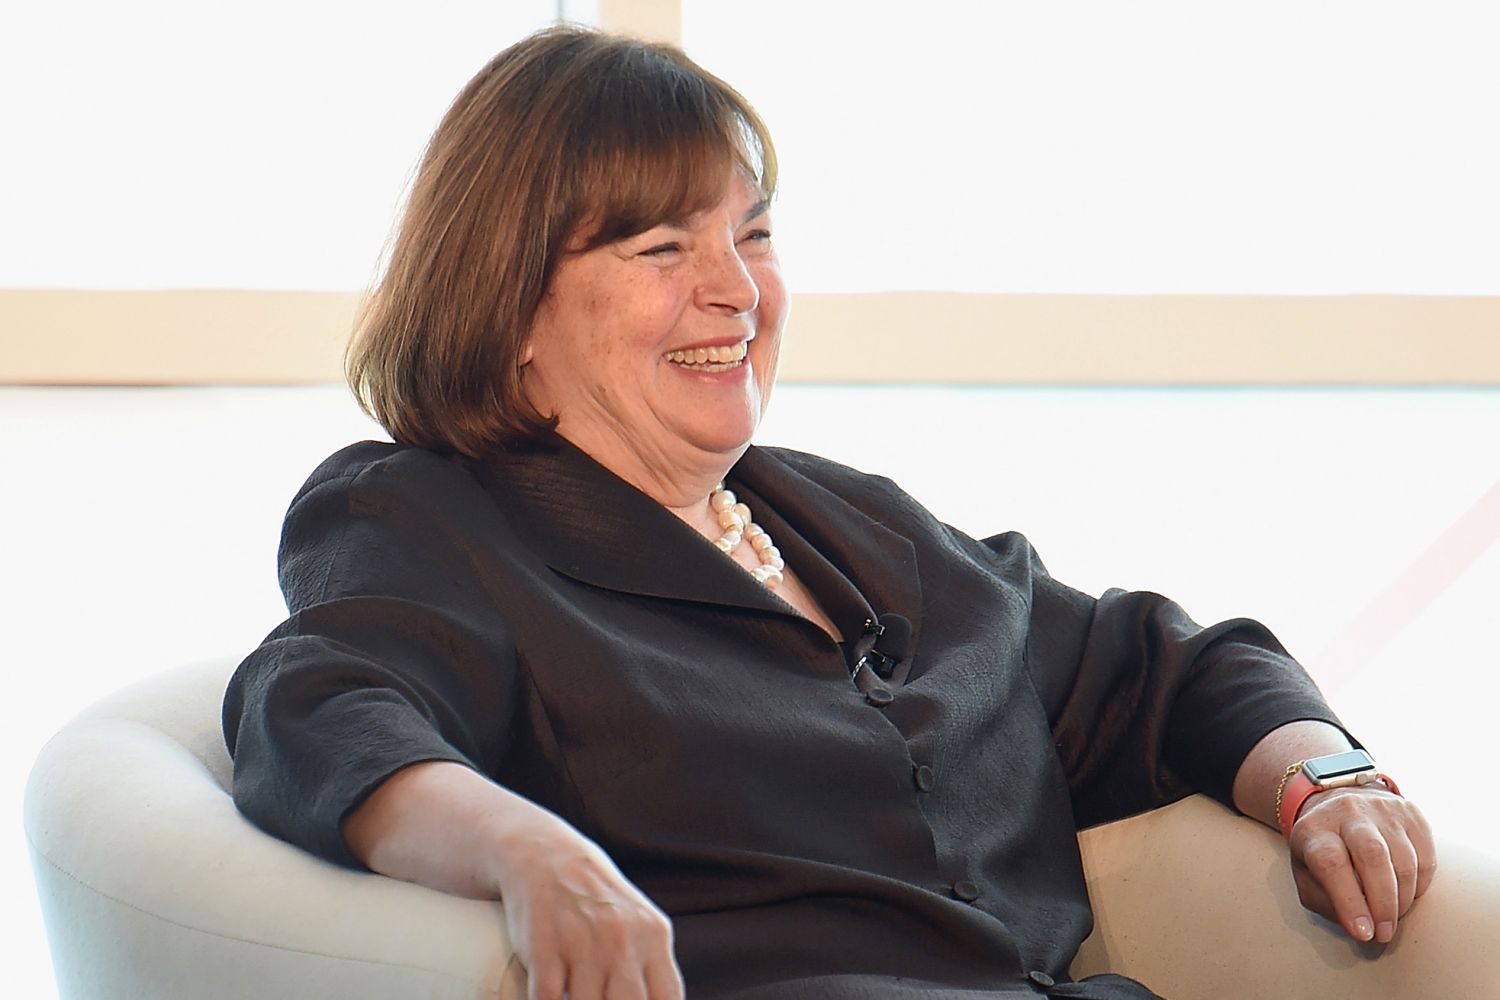 Ina Garten Shares Her Go-To Side Dish Recipe